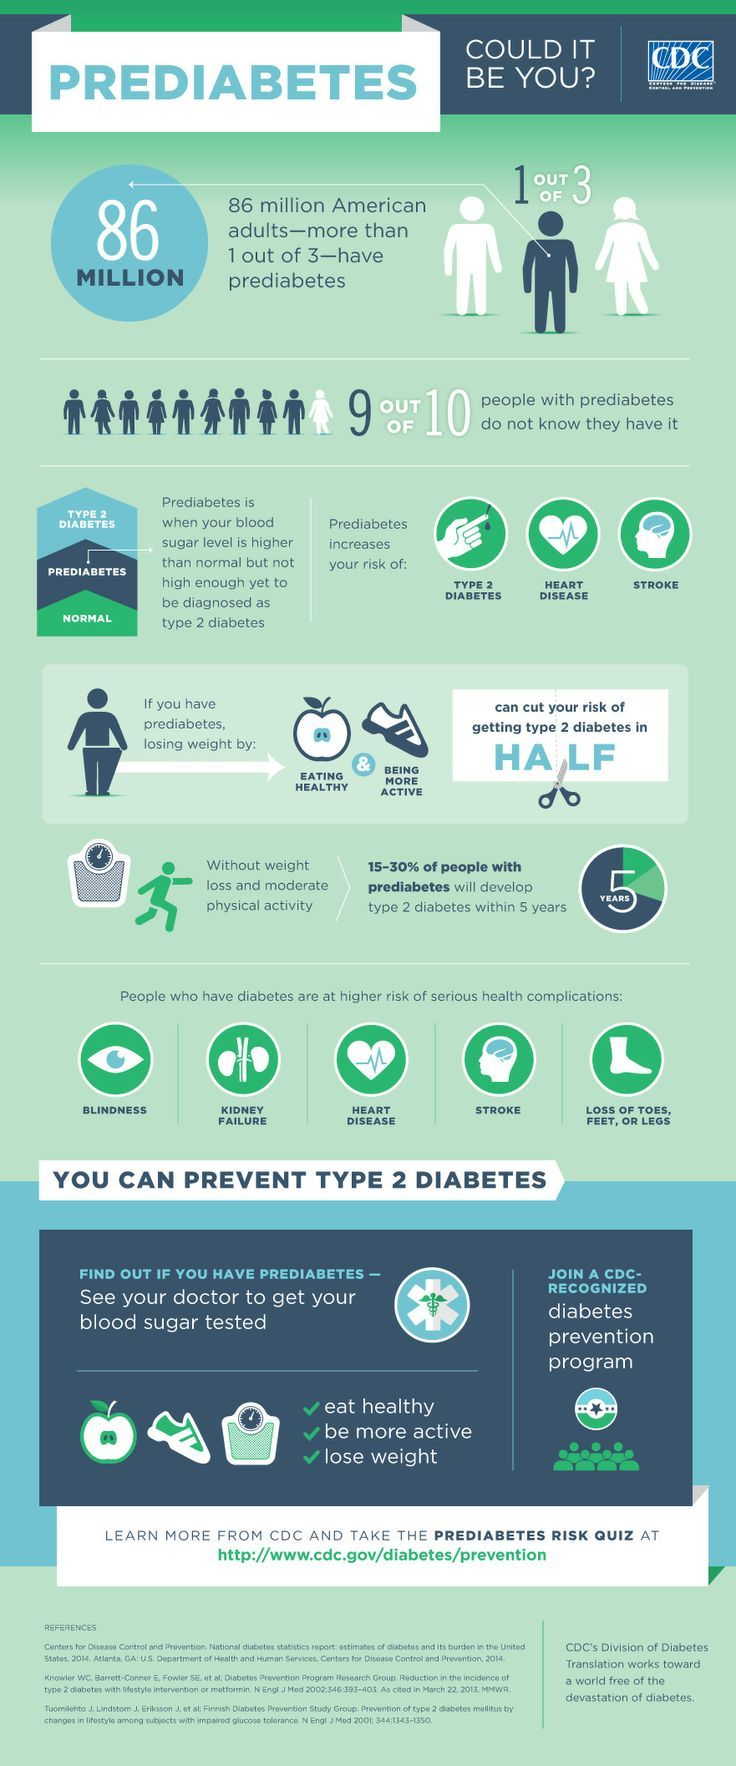 Get the facts about prediabetes with this infographic from @CDCgov, and see your doctor to get your blood sugar tested.